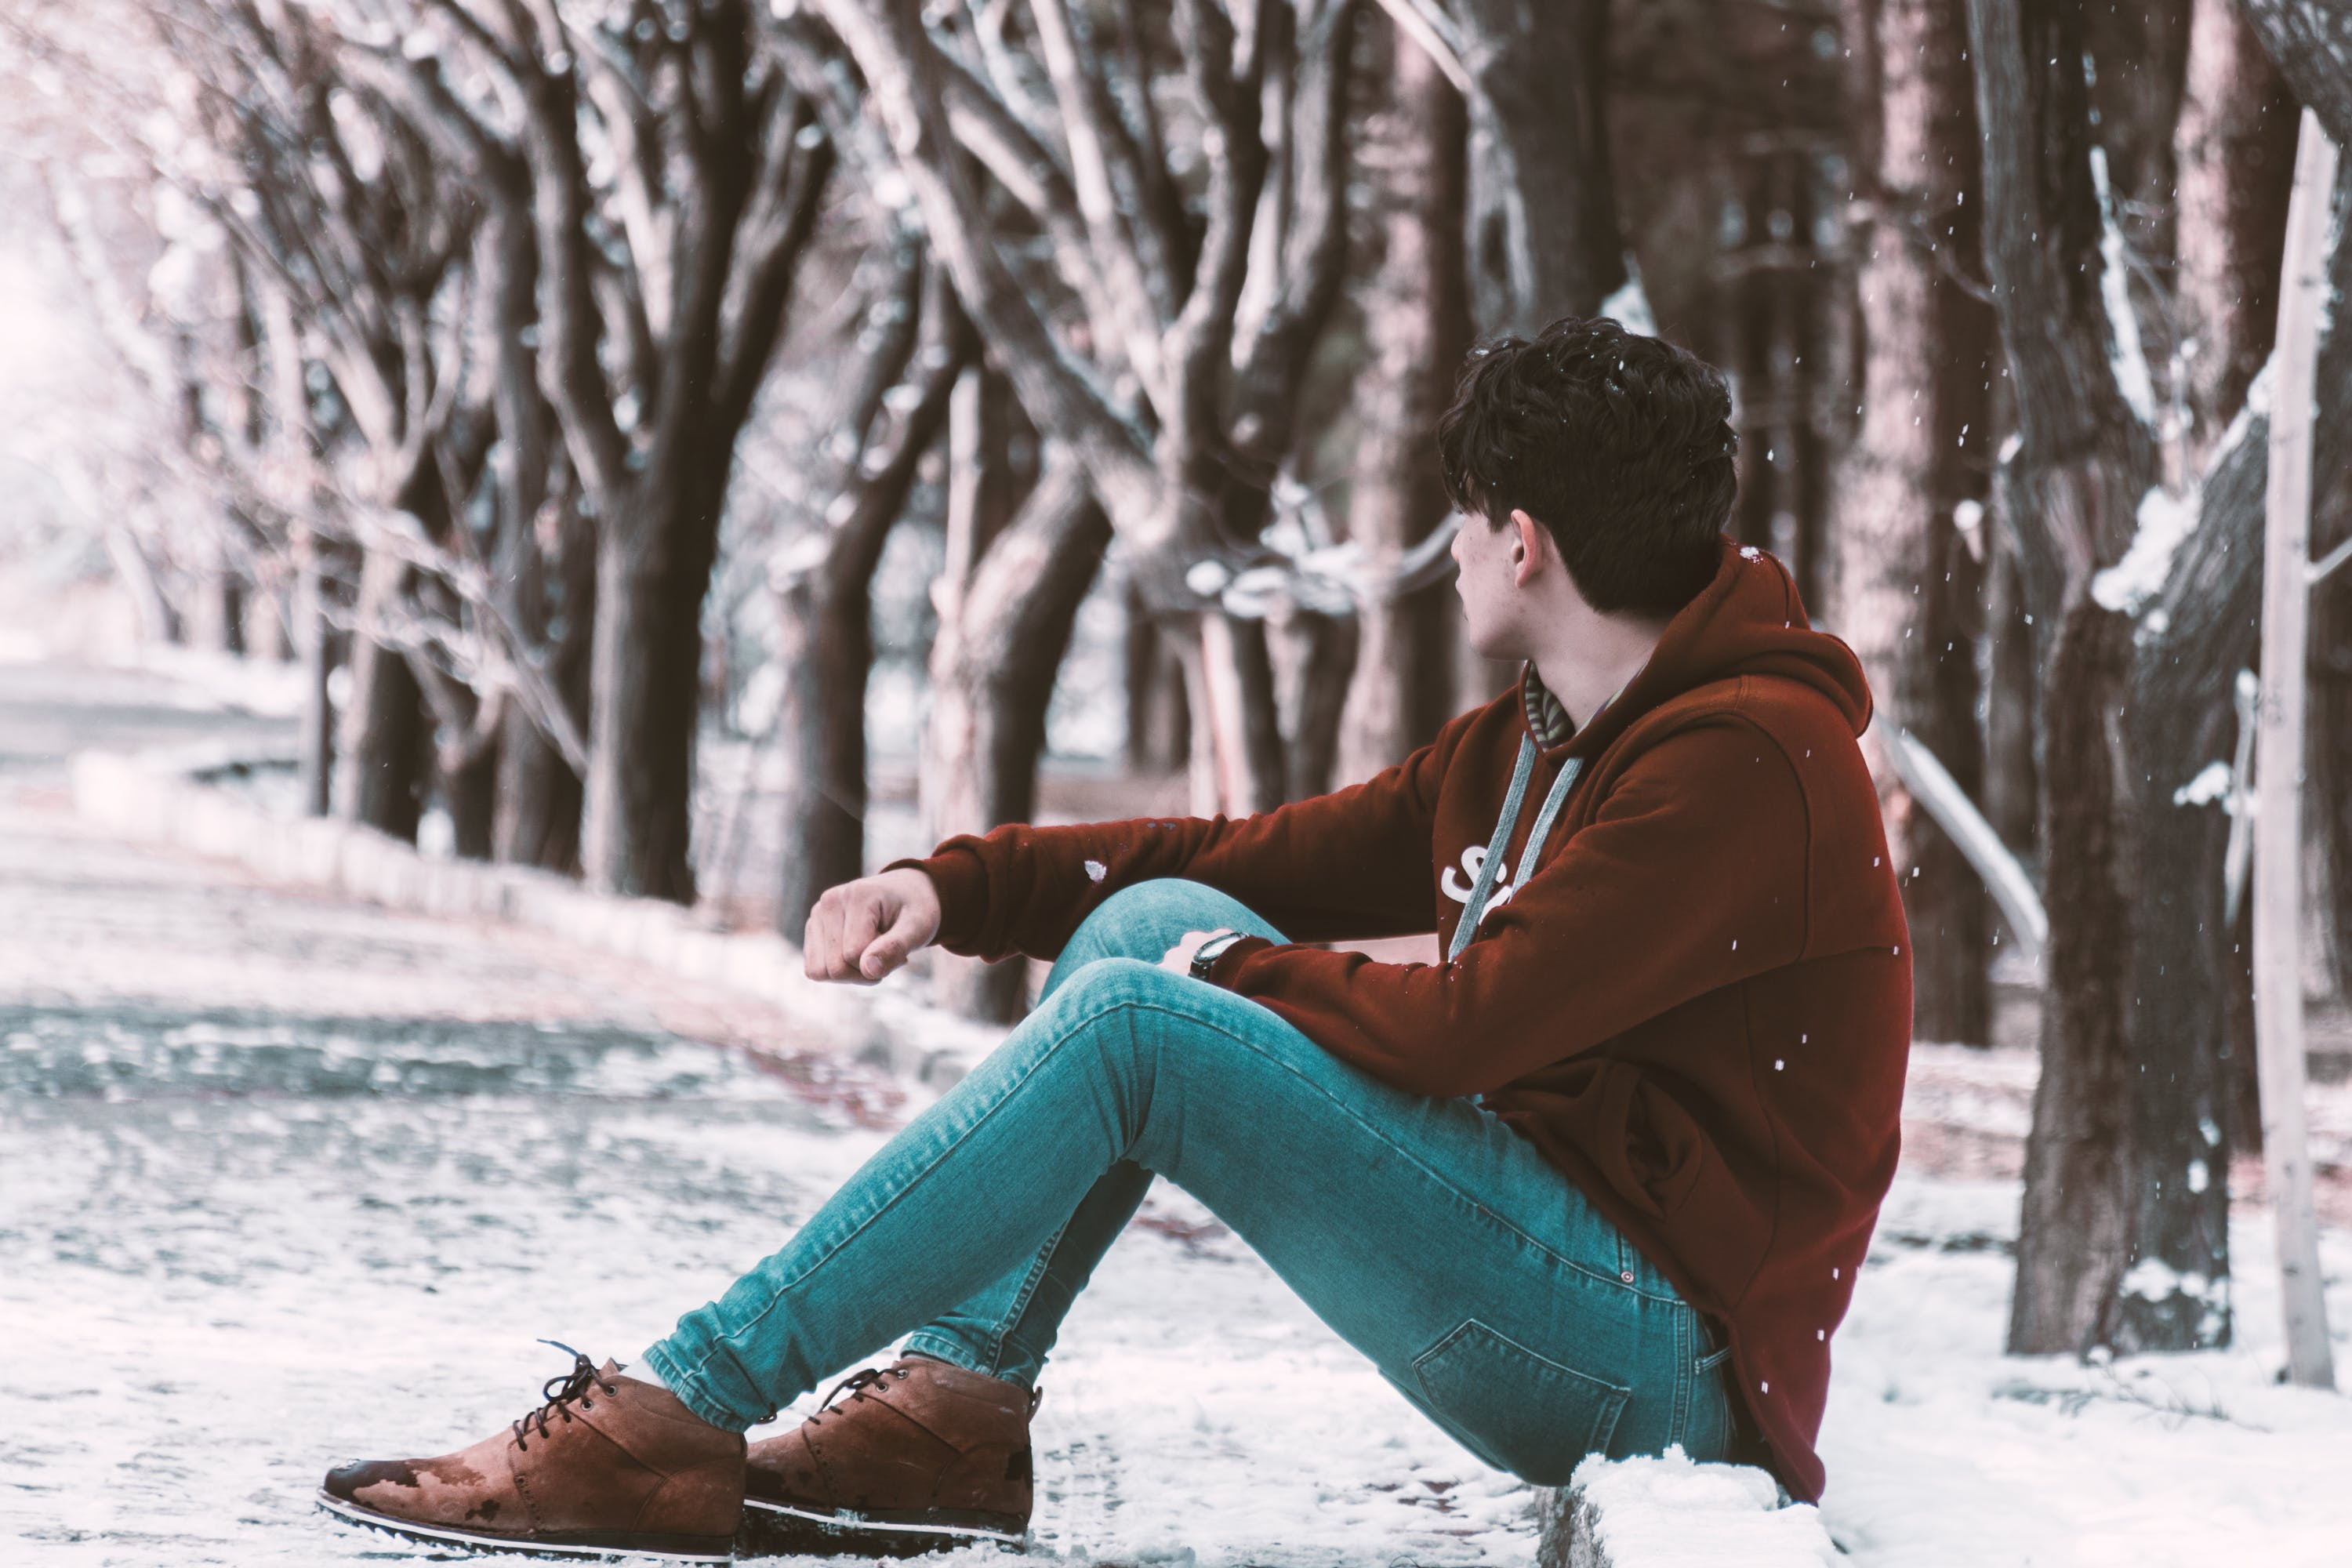 Man Sitting on Ground With Snow